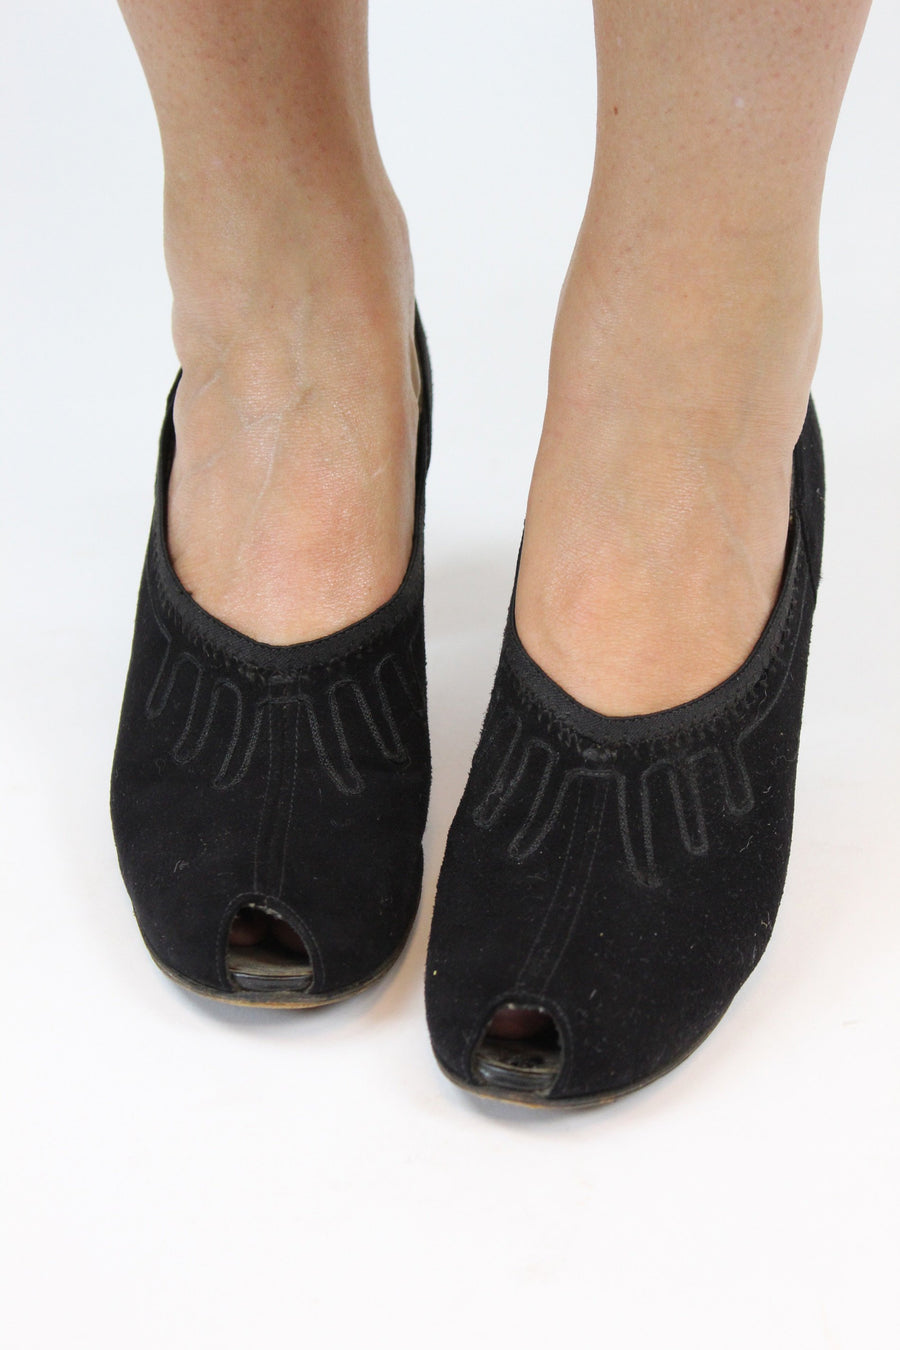 1930s suede peep toe shoes | vintage soutache pumps | size 6.5 us